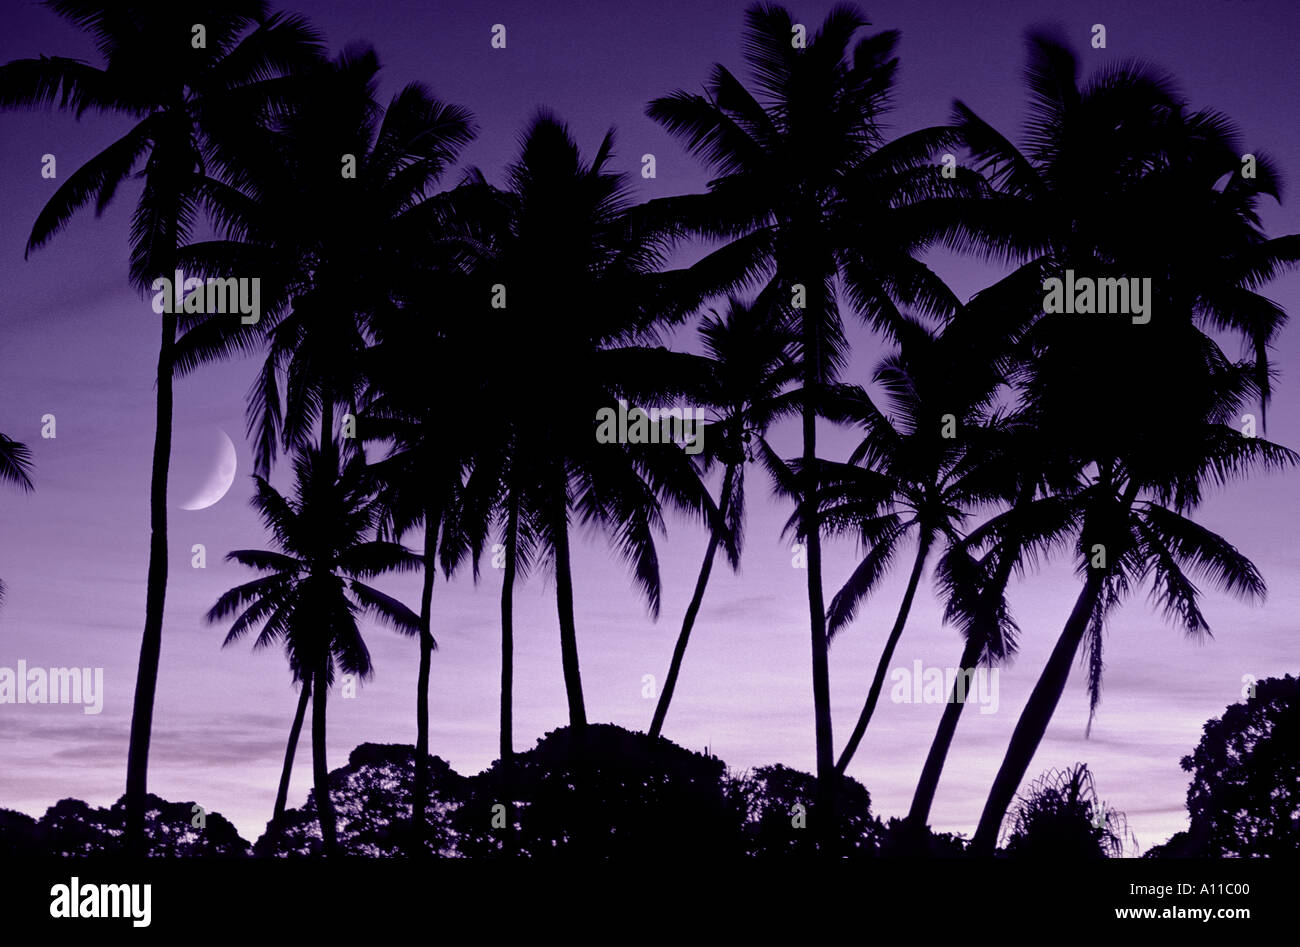 Palm trees at dusk with crescent moon Kiribati Central Pacific - Stock Image